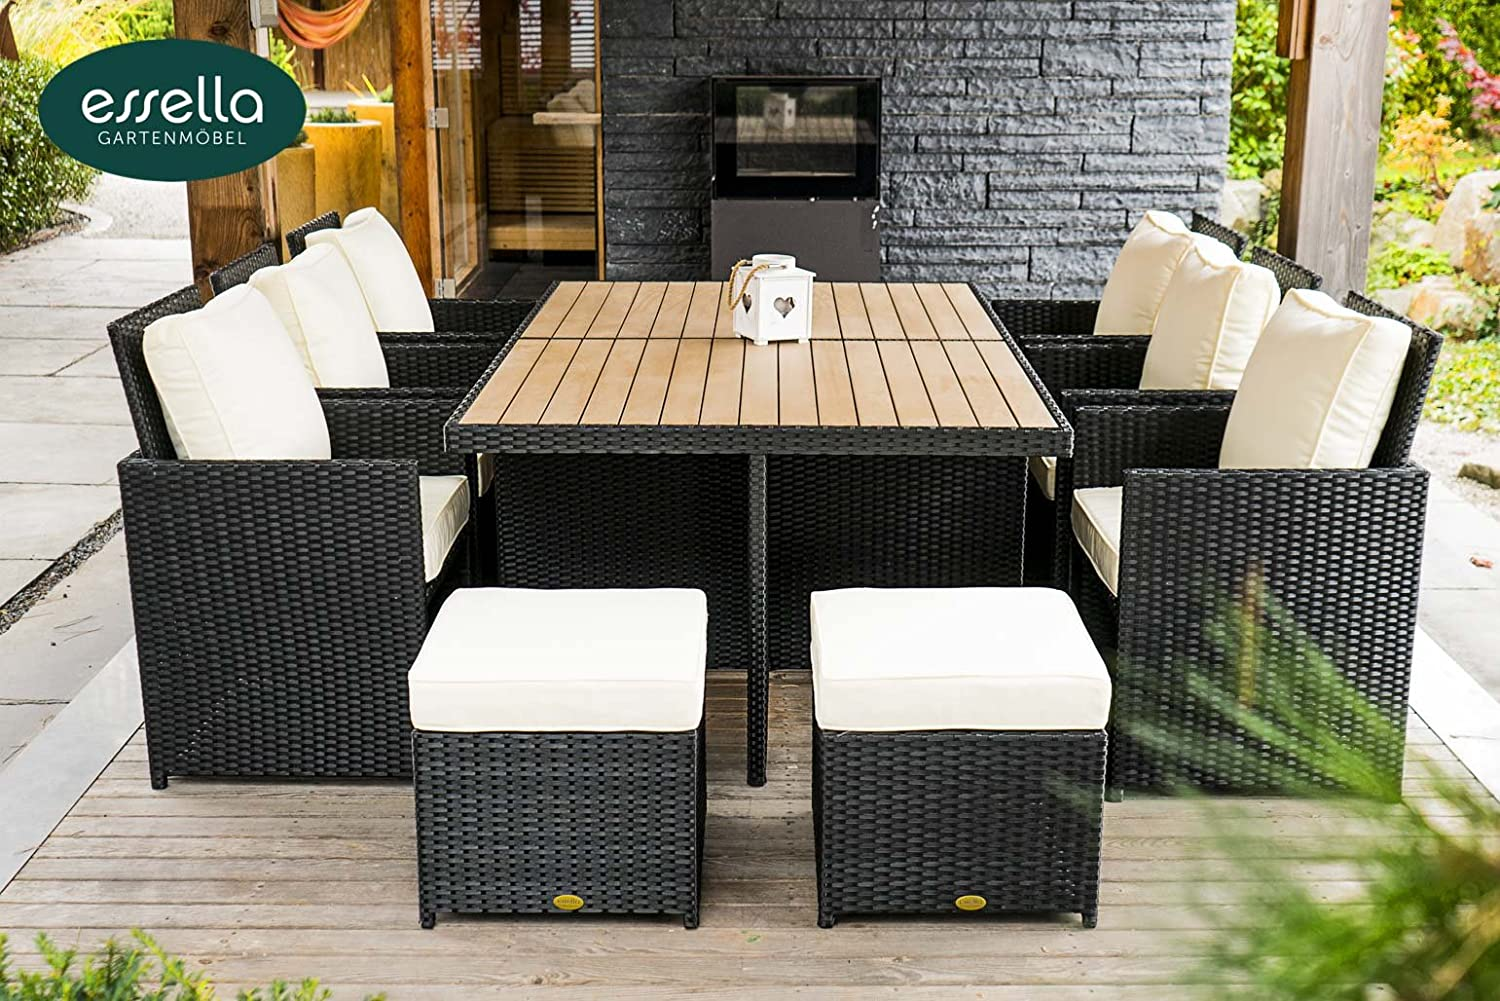 polyrattan sitzgruppe vienna 6 personen polywood flachgeflecht schwarz gartenm bel. Black Bedroom Furniture Sets. Home Design Ideas